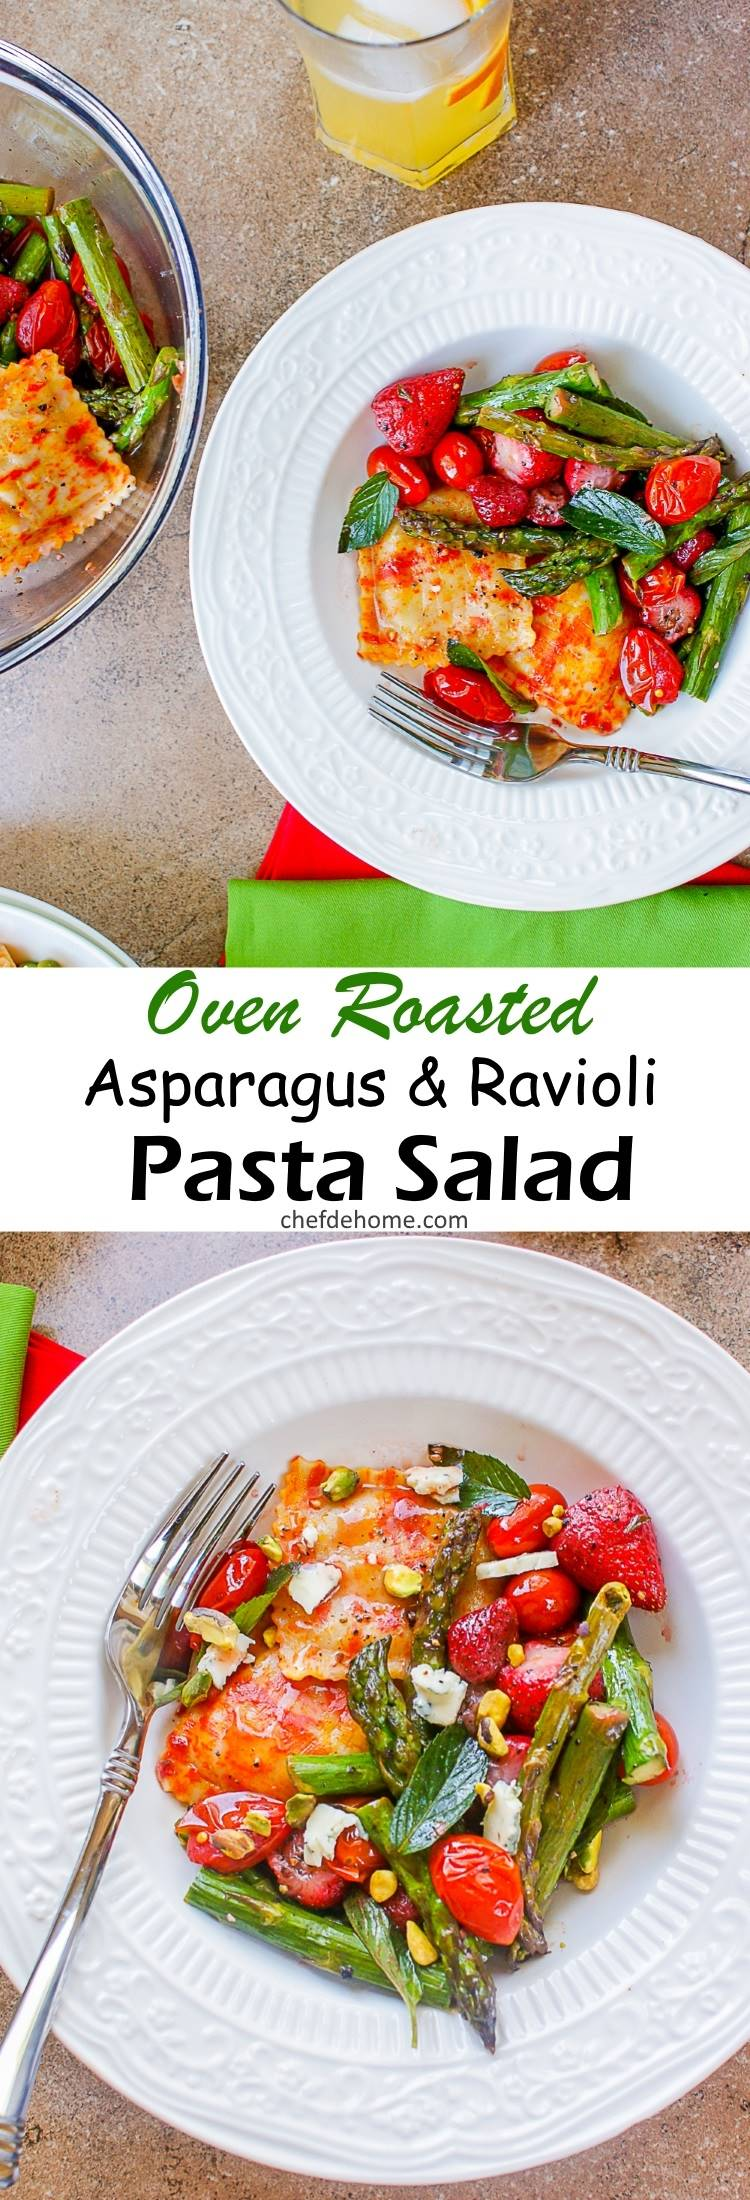 Oven Roasted Asparagus Pumpkin Ravioli Pasta Salad with Juicy Roasted Strawberries and Orange Dressing | chefdehome.com